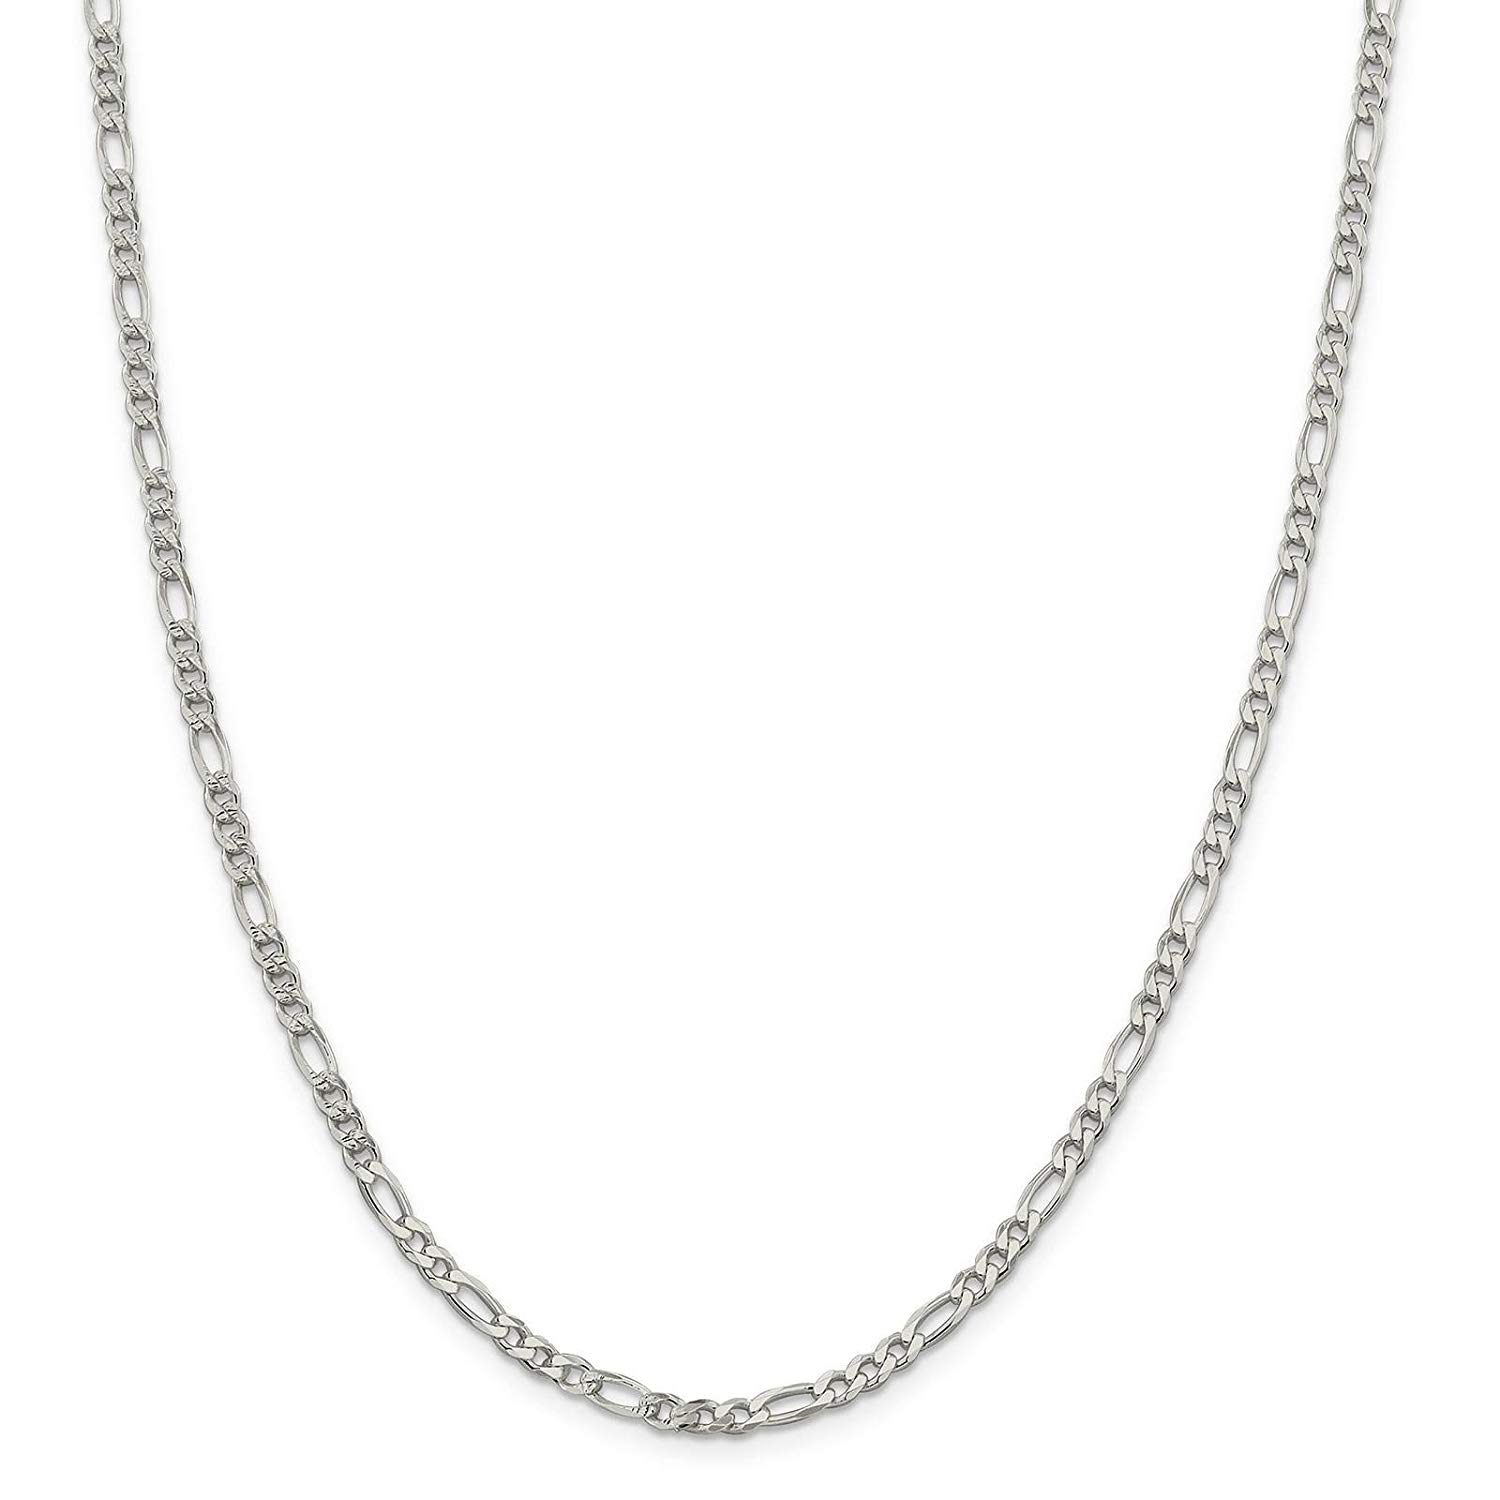 "925 Sterling Silver 4mm Polished Pave Flat Figaro Link Chain Necklace 7"" - 24"""